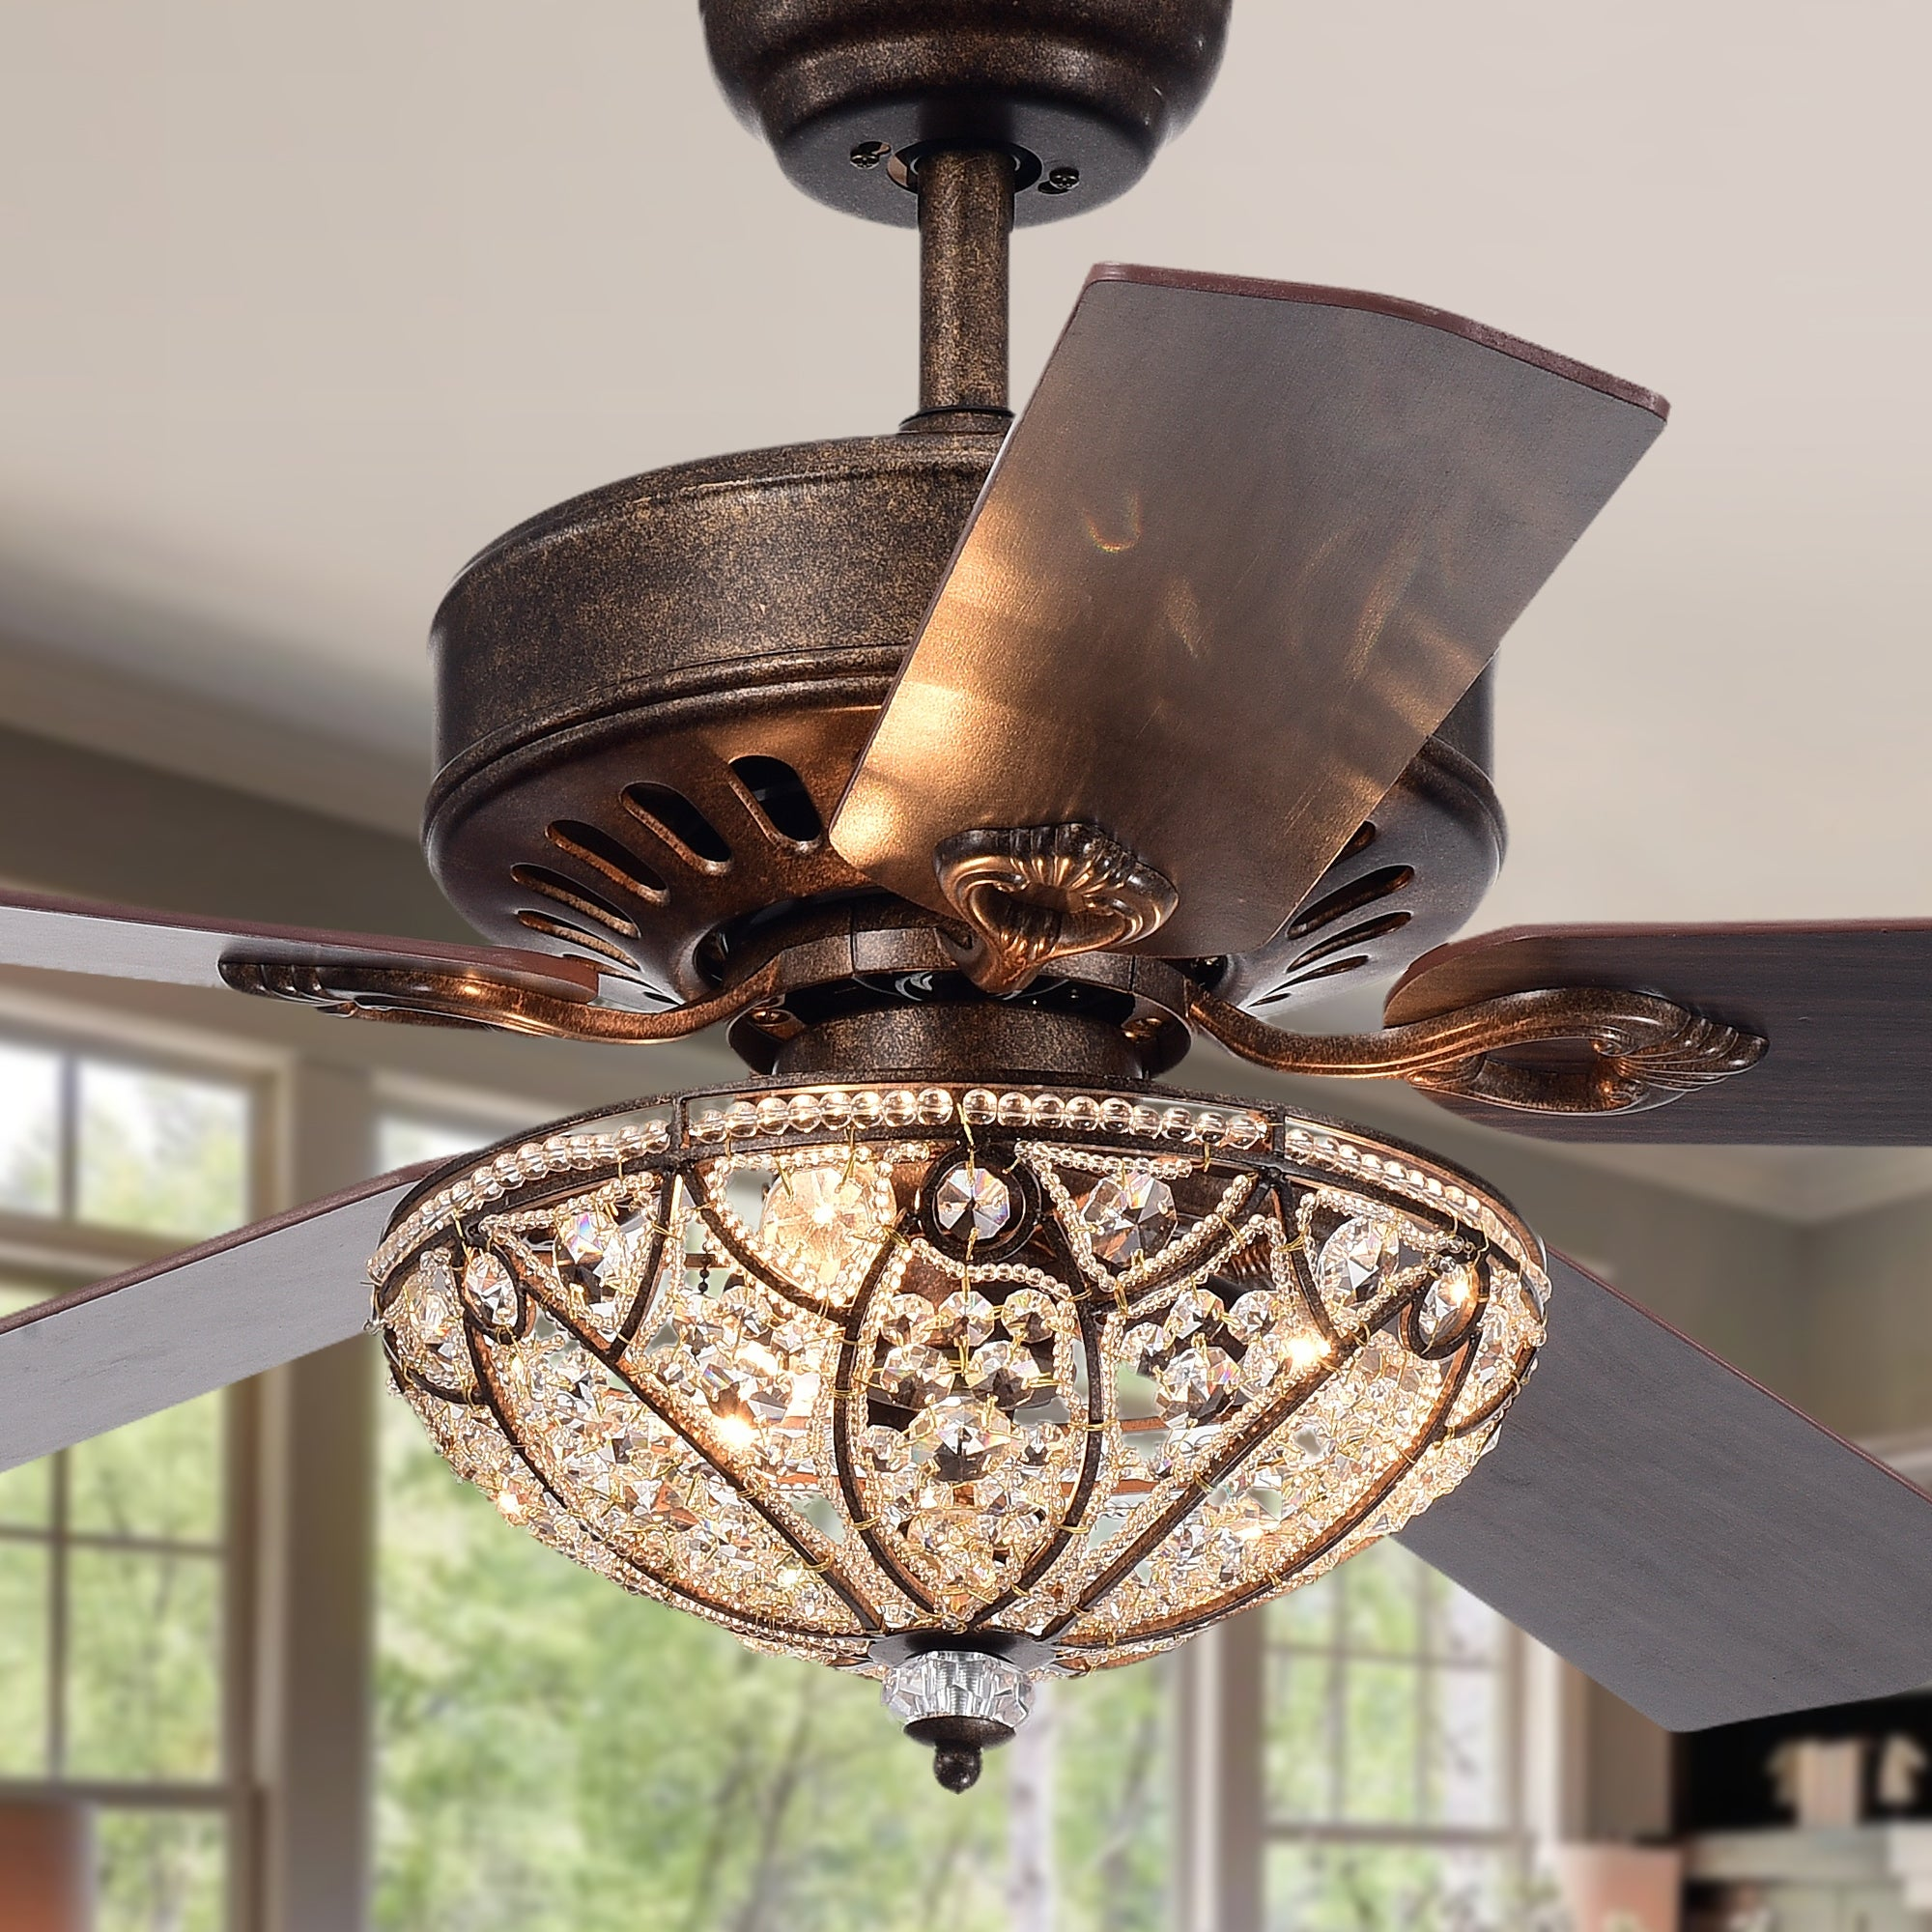 Shop Black Friday Deals On Gliska Rustic Bronze 5 Blade Lighted Ceiling Fan With Crystal Shade On Sale Overstock 22966550